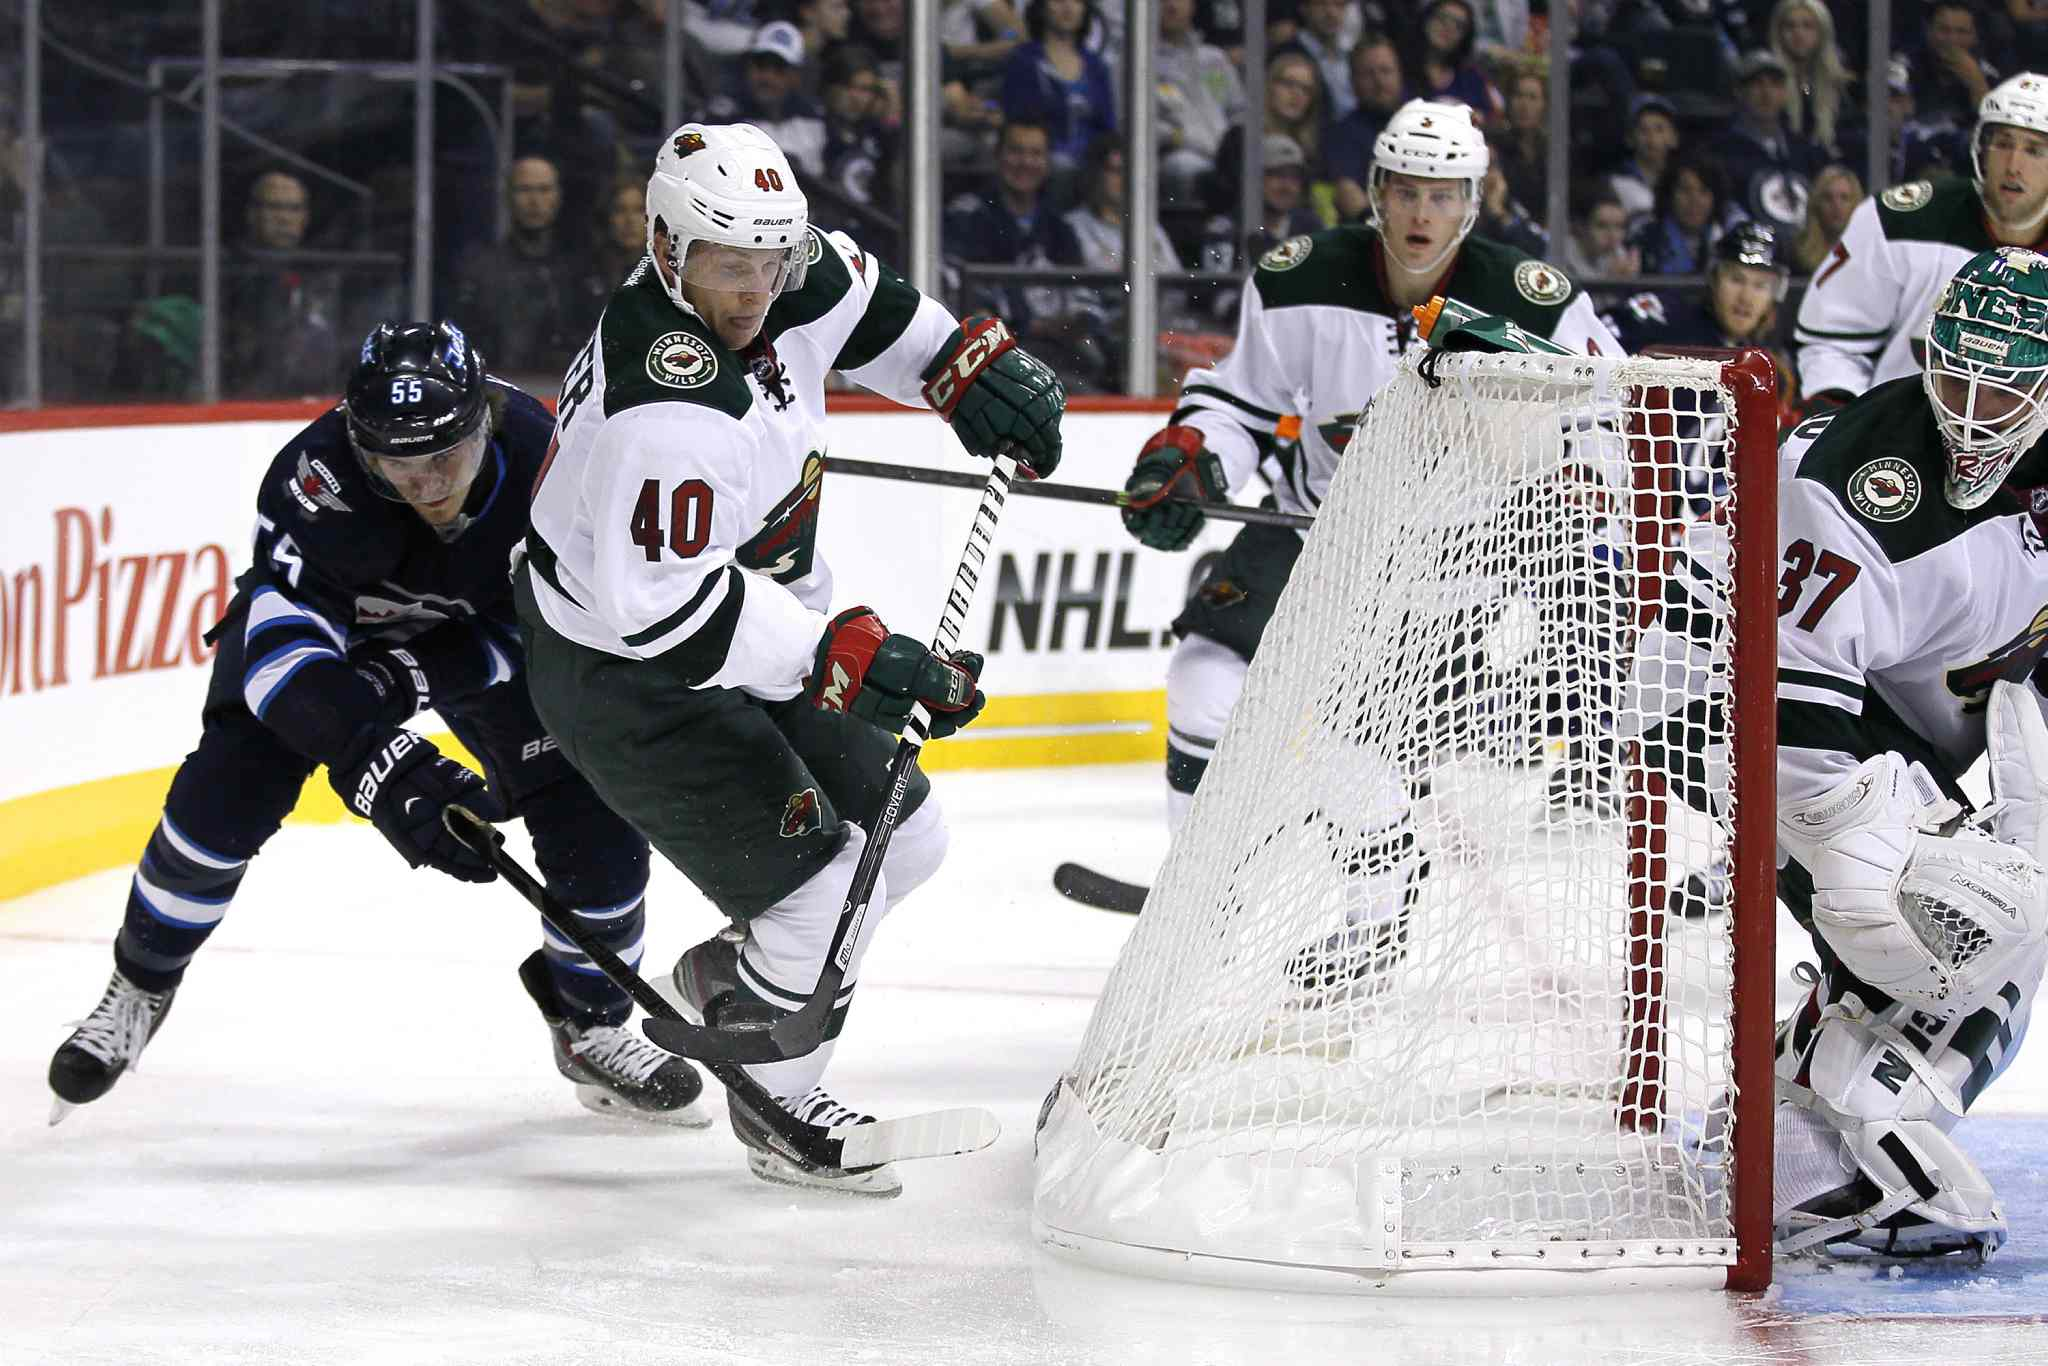 Winnipeg Jets' Mark Scheifele (left) and Minnesota Wild's Steven Kampfer (40) fight for the puck behind the Wild's net during the second period.